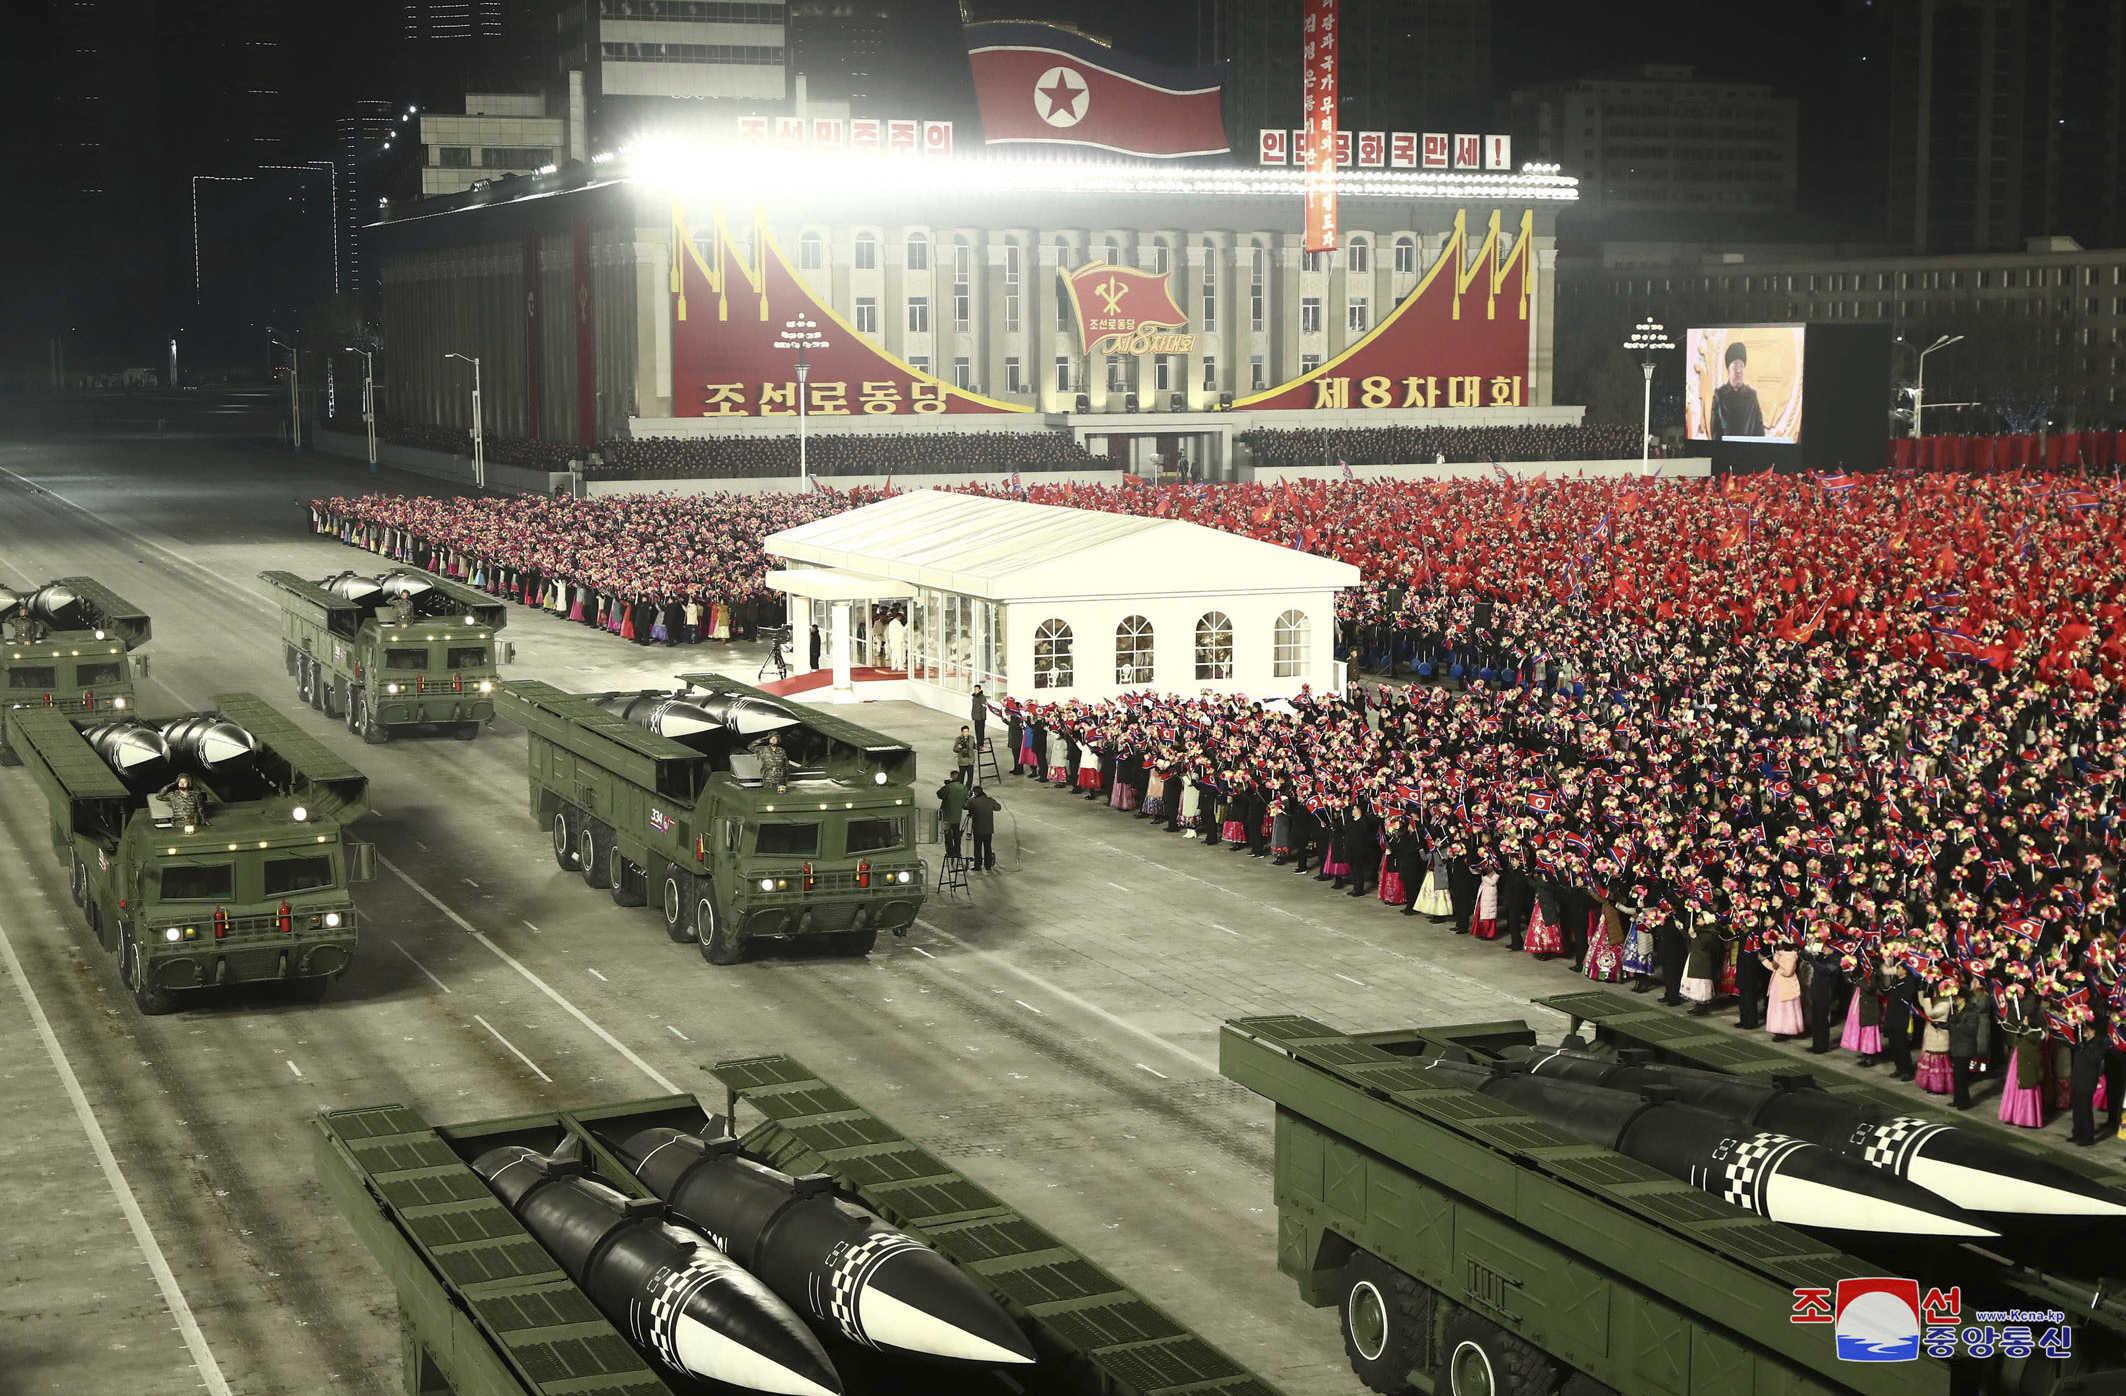 Missiles are seen on trucks during a military parade in Pyongyang, North Korea, on Jan. 14, 2021. (Korean Central News Agency/Korea News Service via AP)